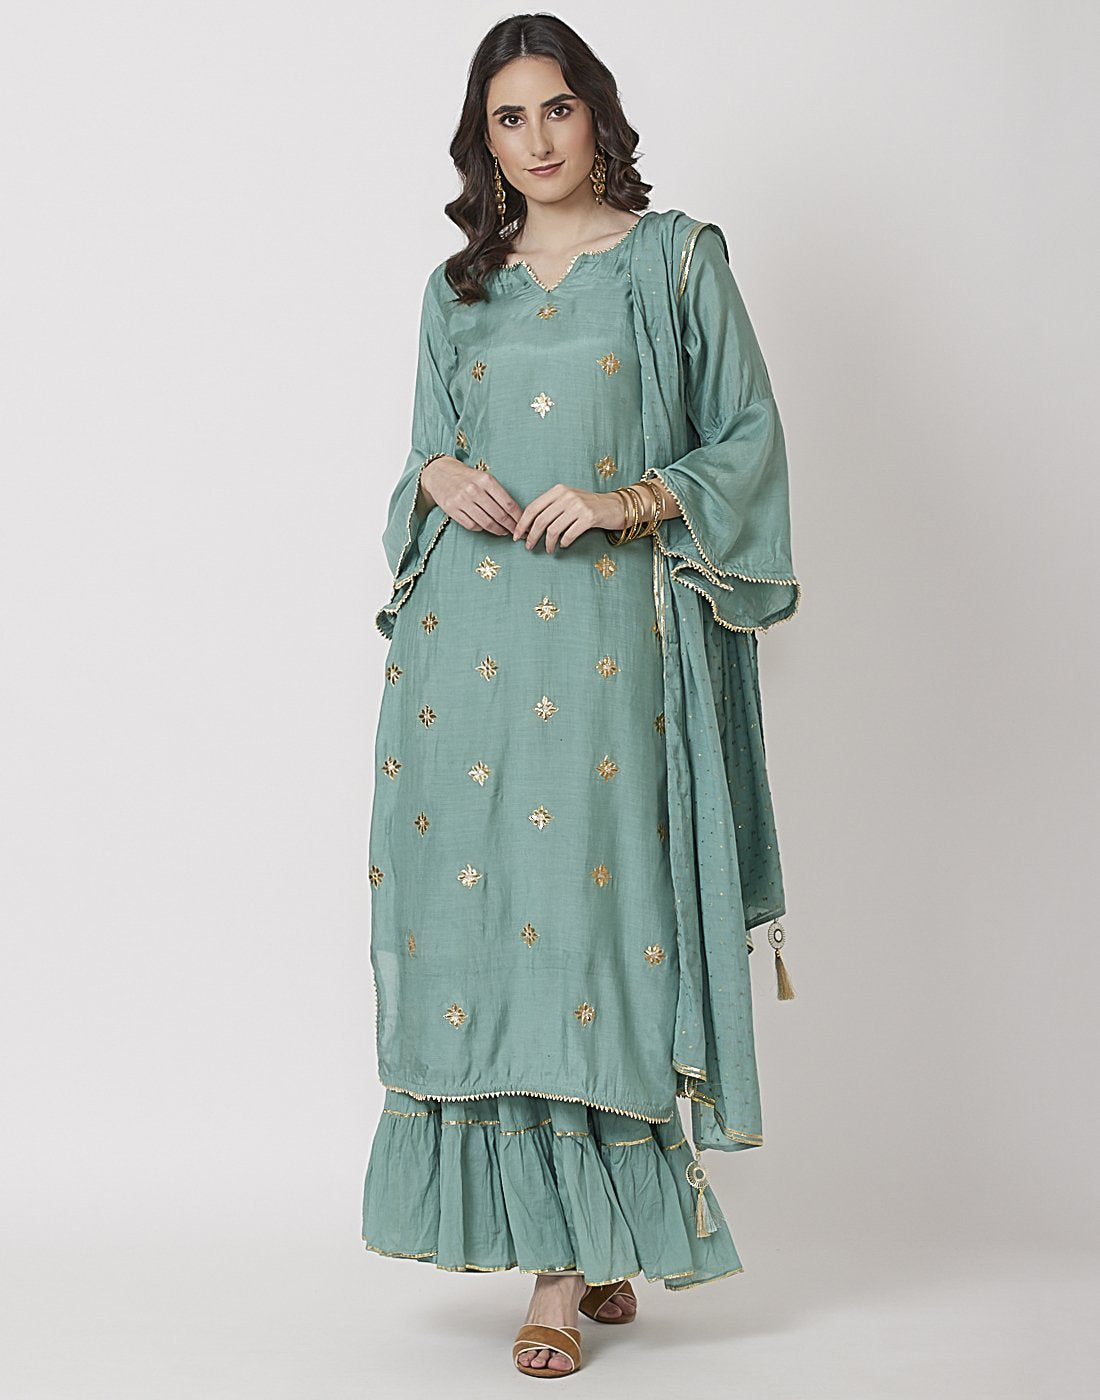 Sea Green Cotton Chanderi Salwar Kameez